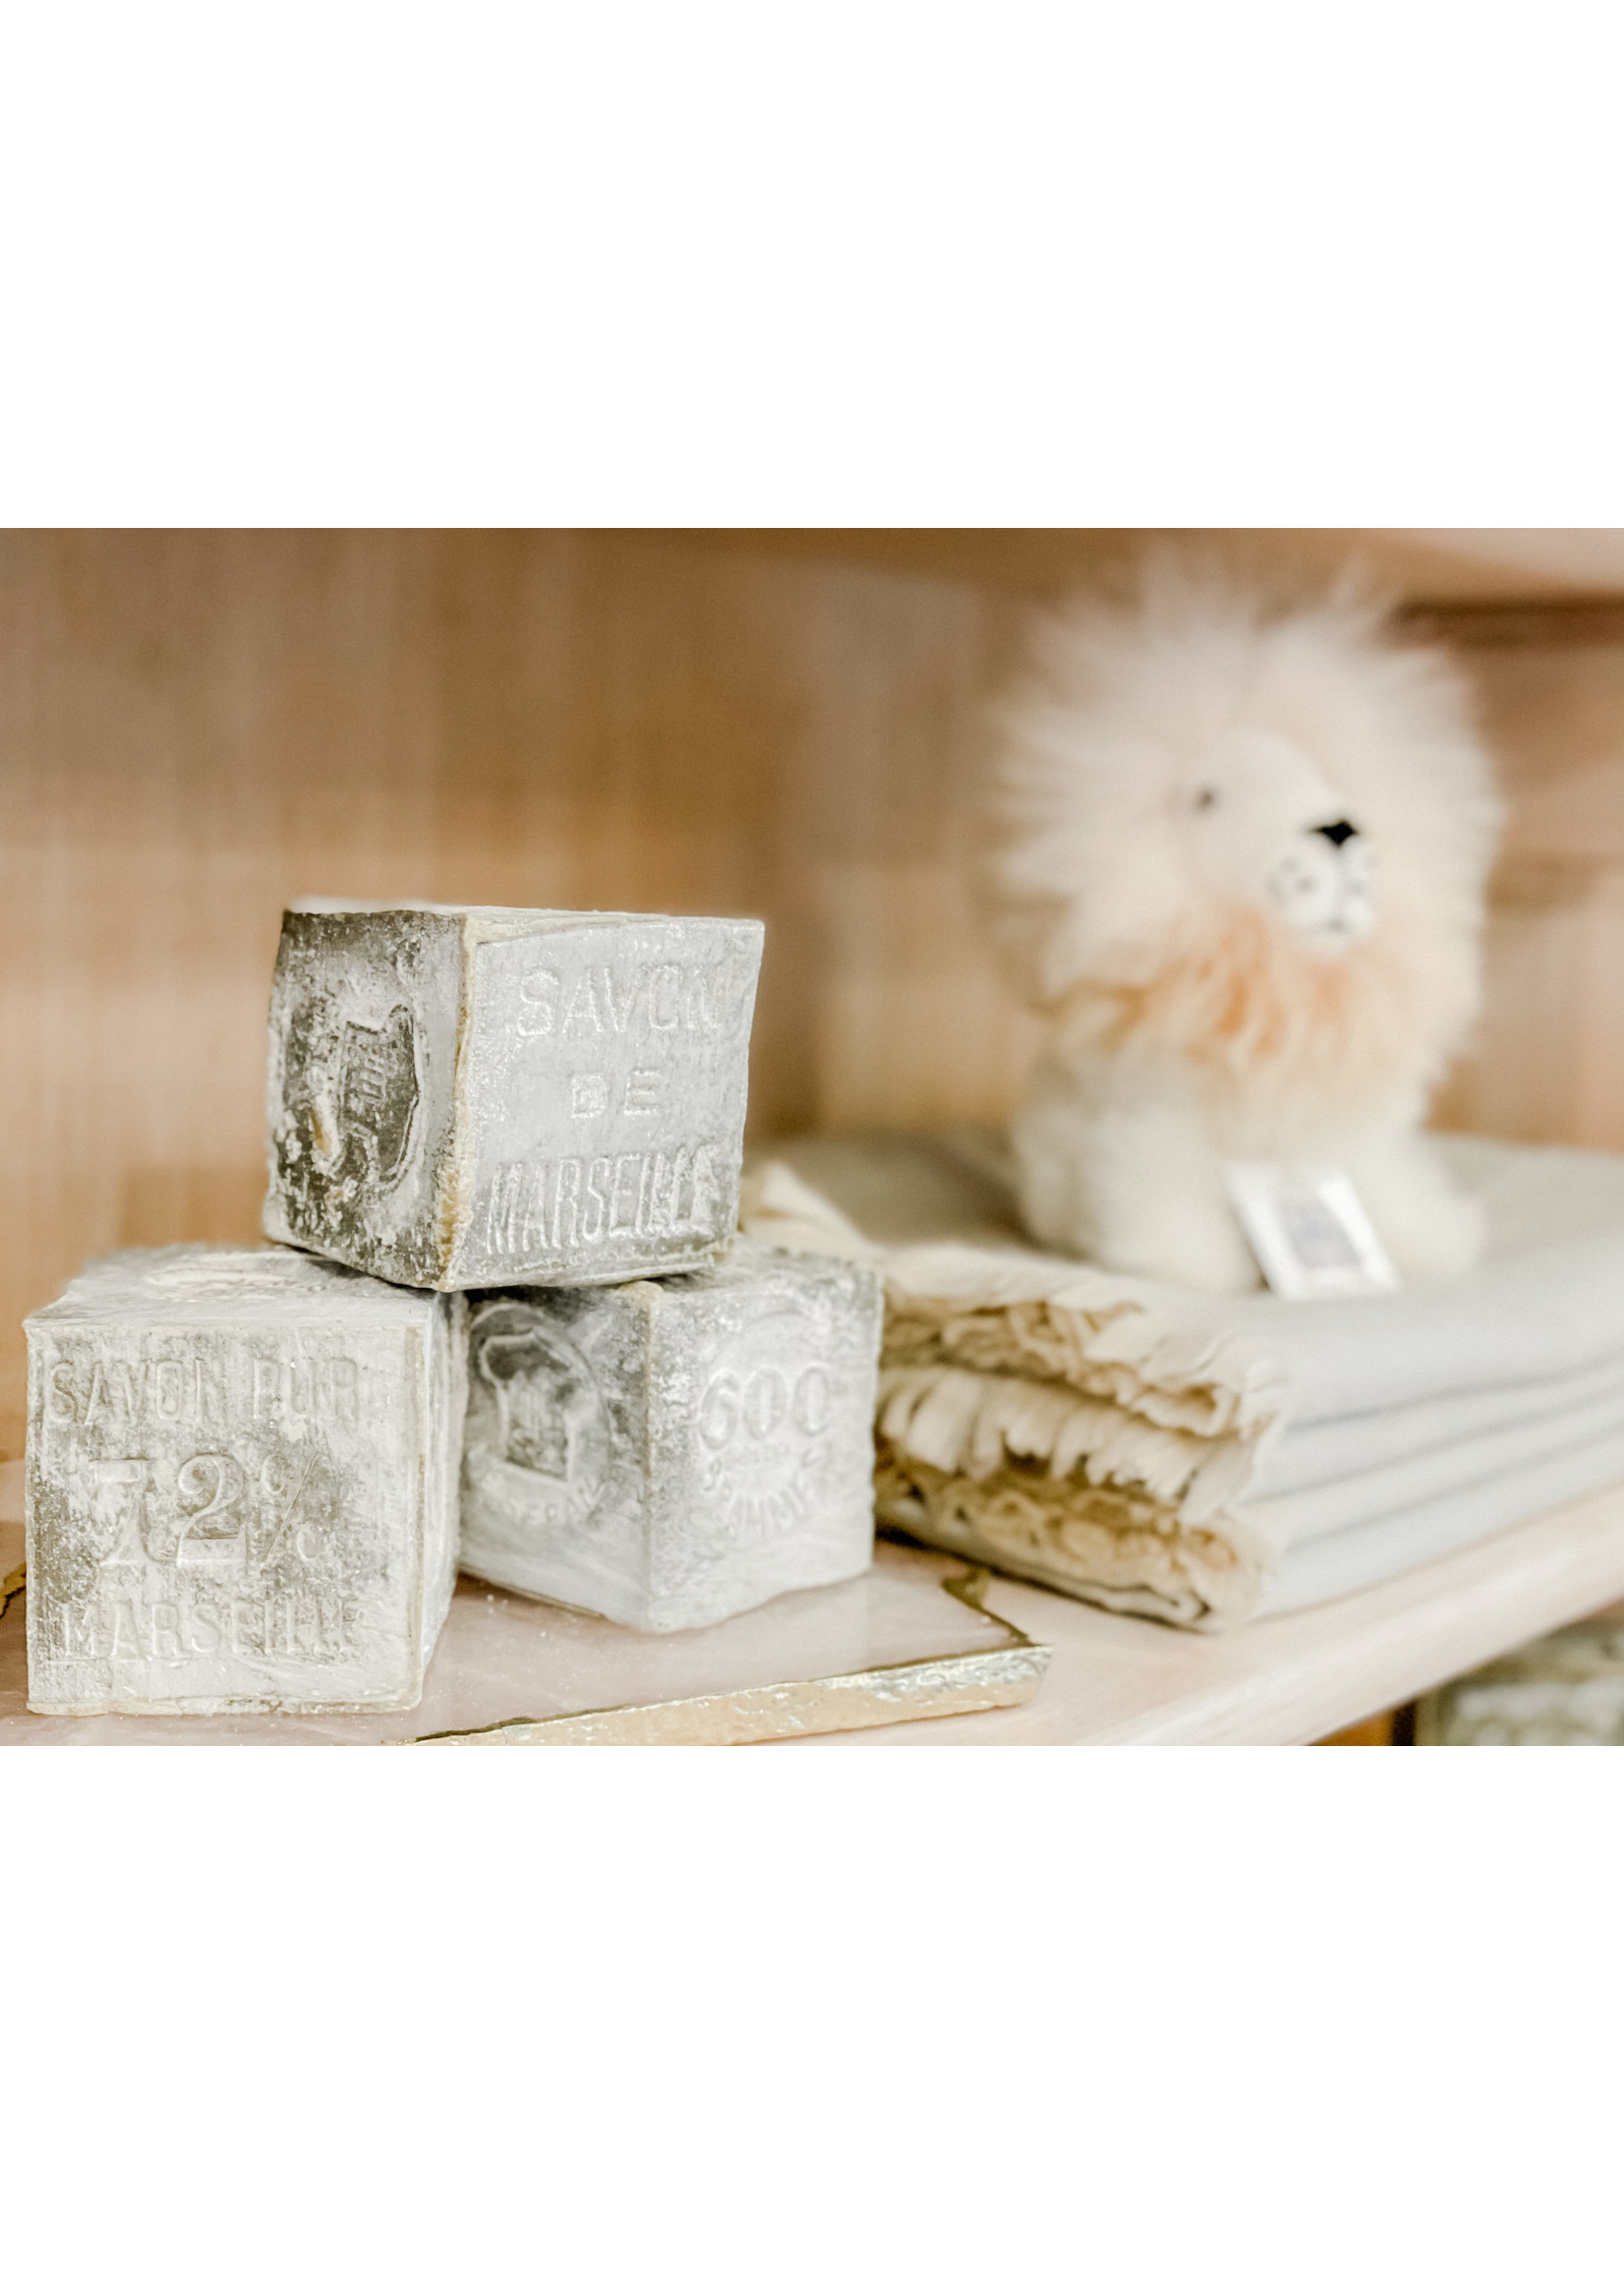 French Soap 600g